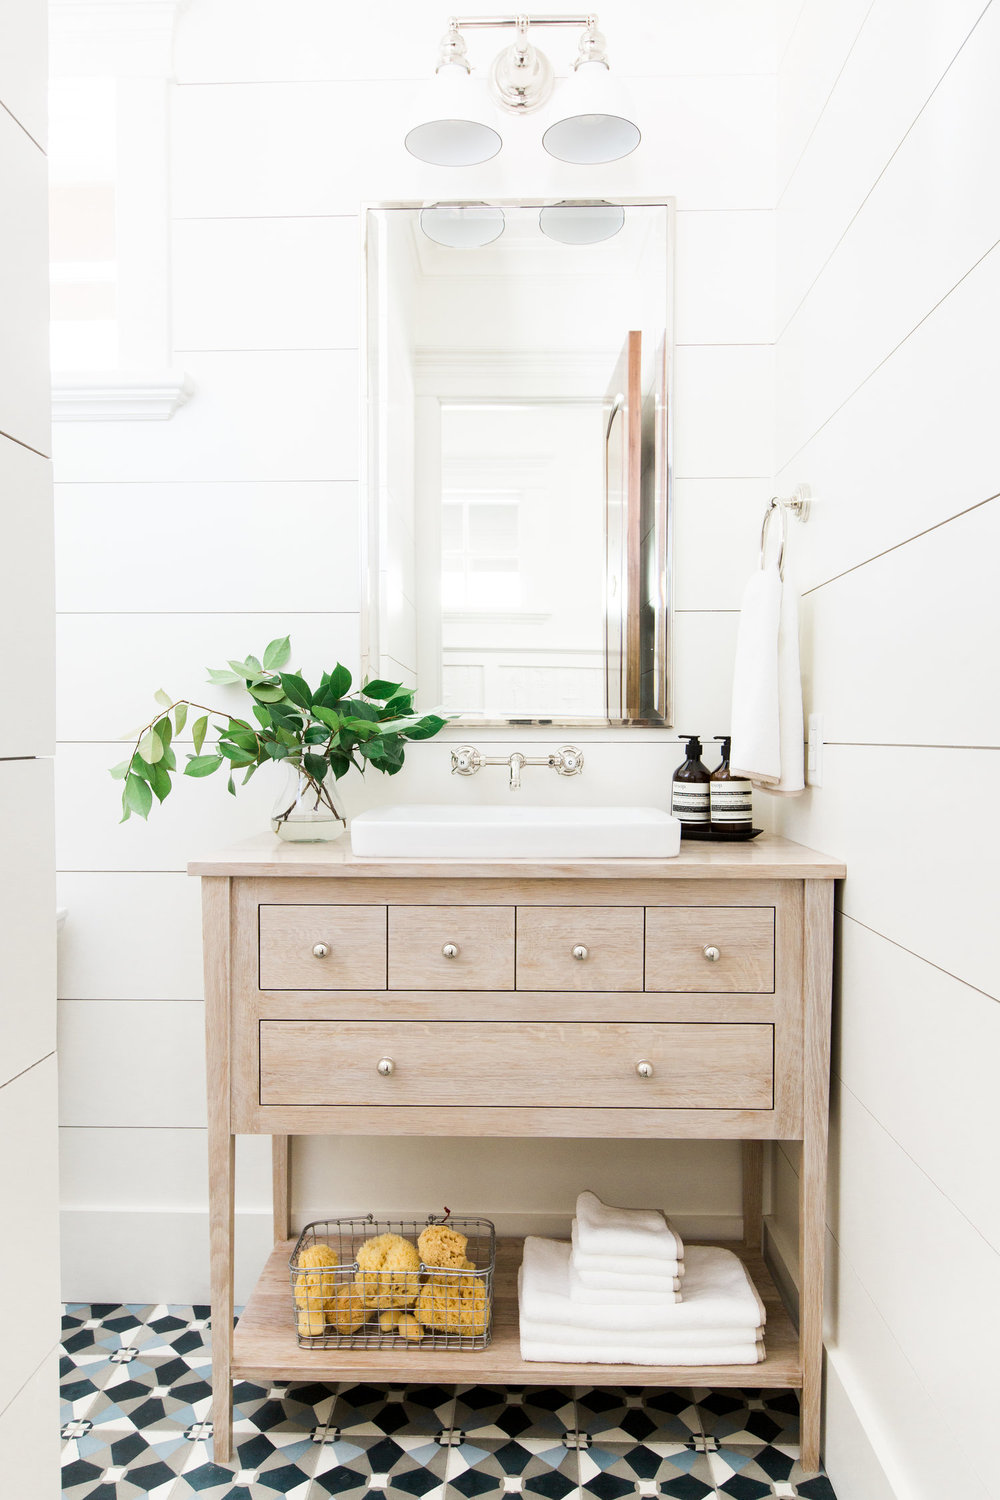 Wide+shiplap+planks,+bleached+oak+vanity+and+cement+tile+floors+||+Studio+McGee.jpg